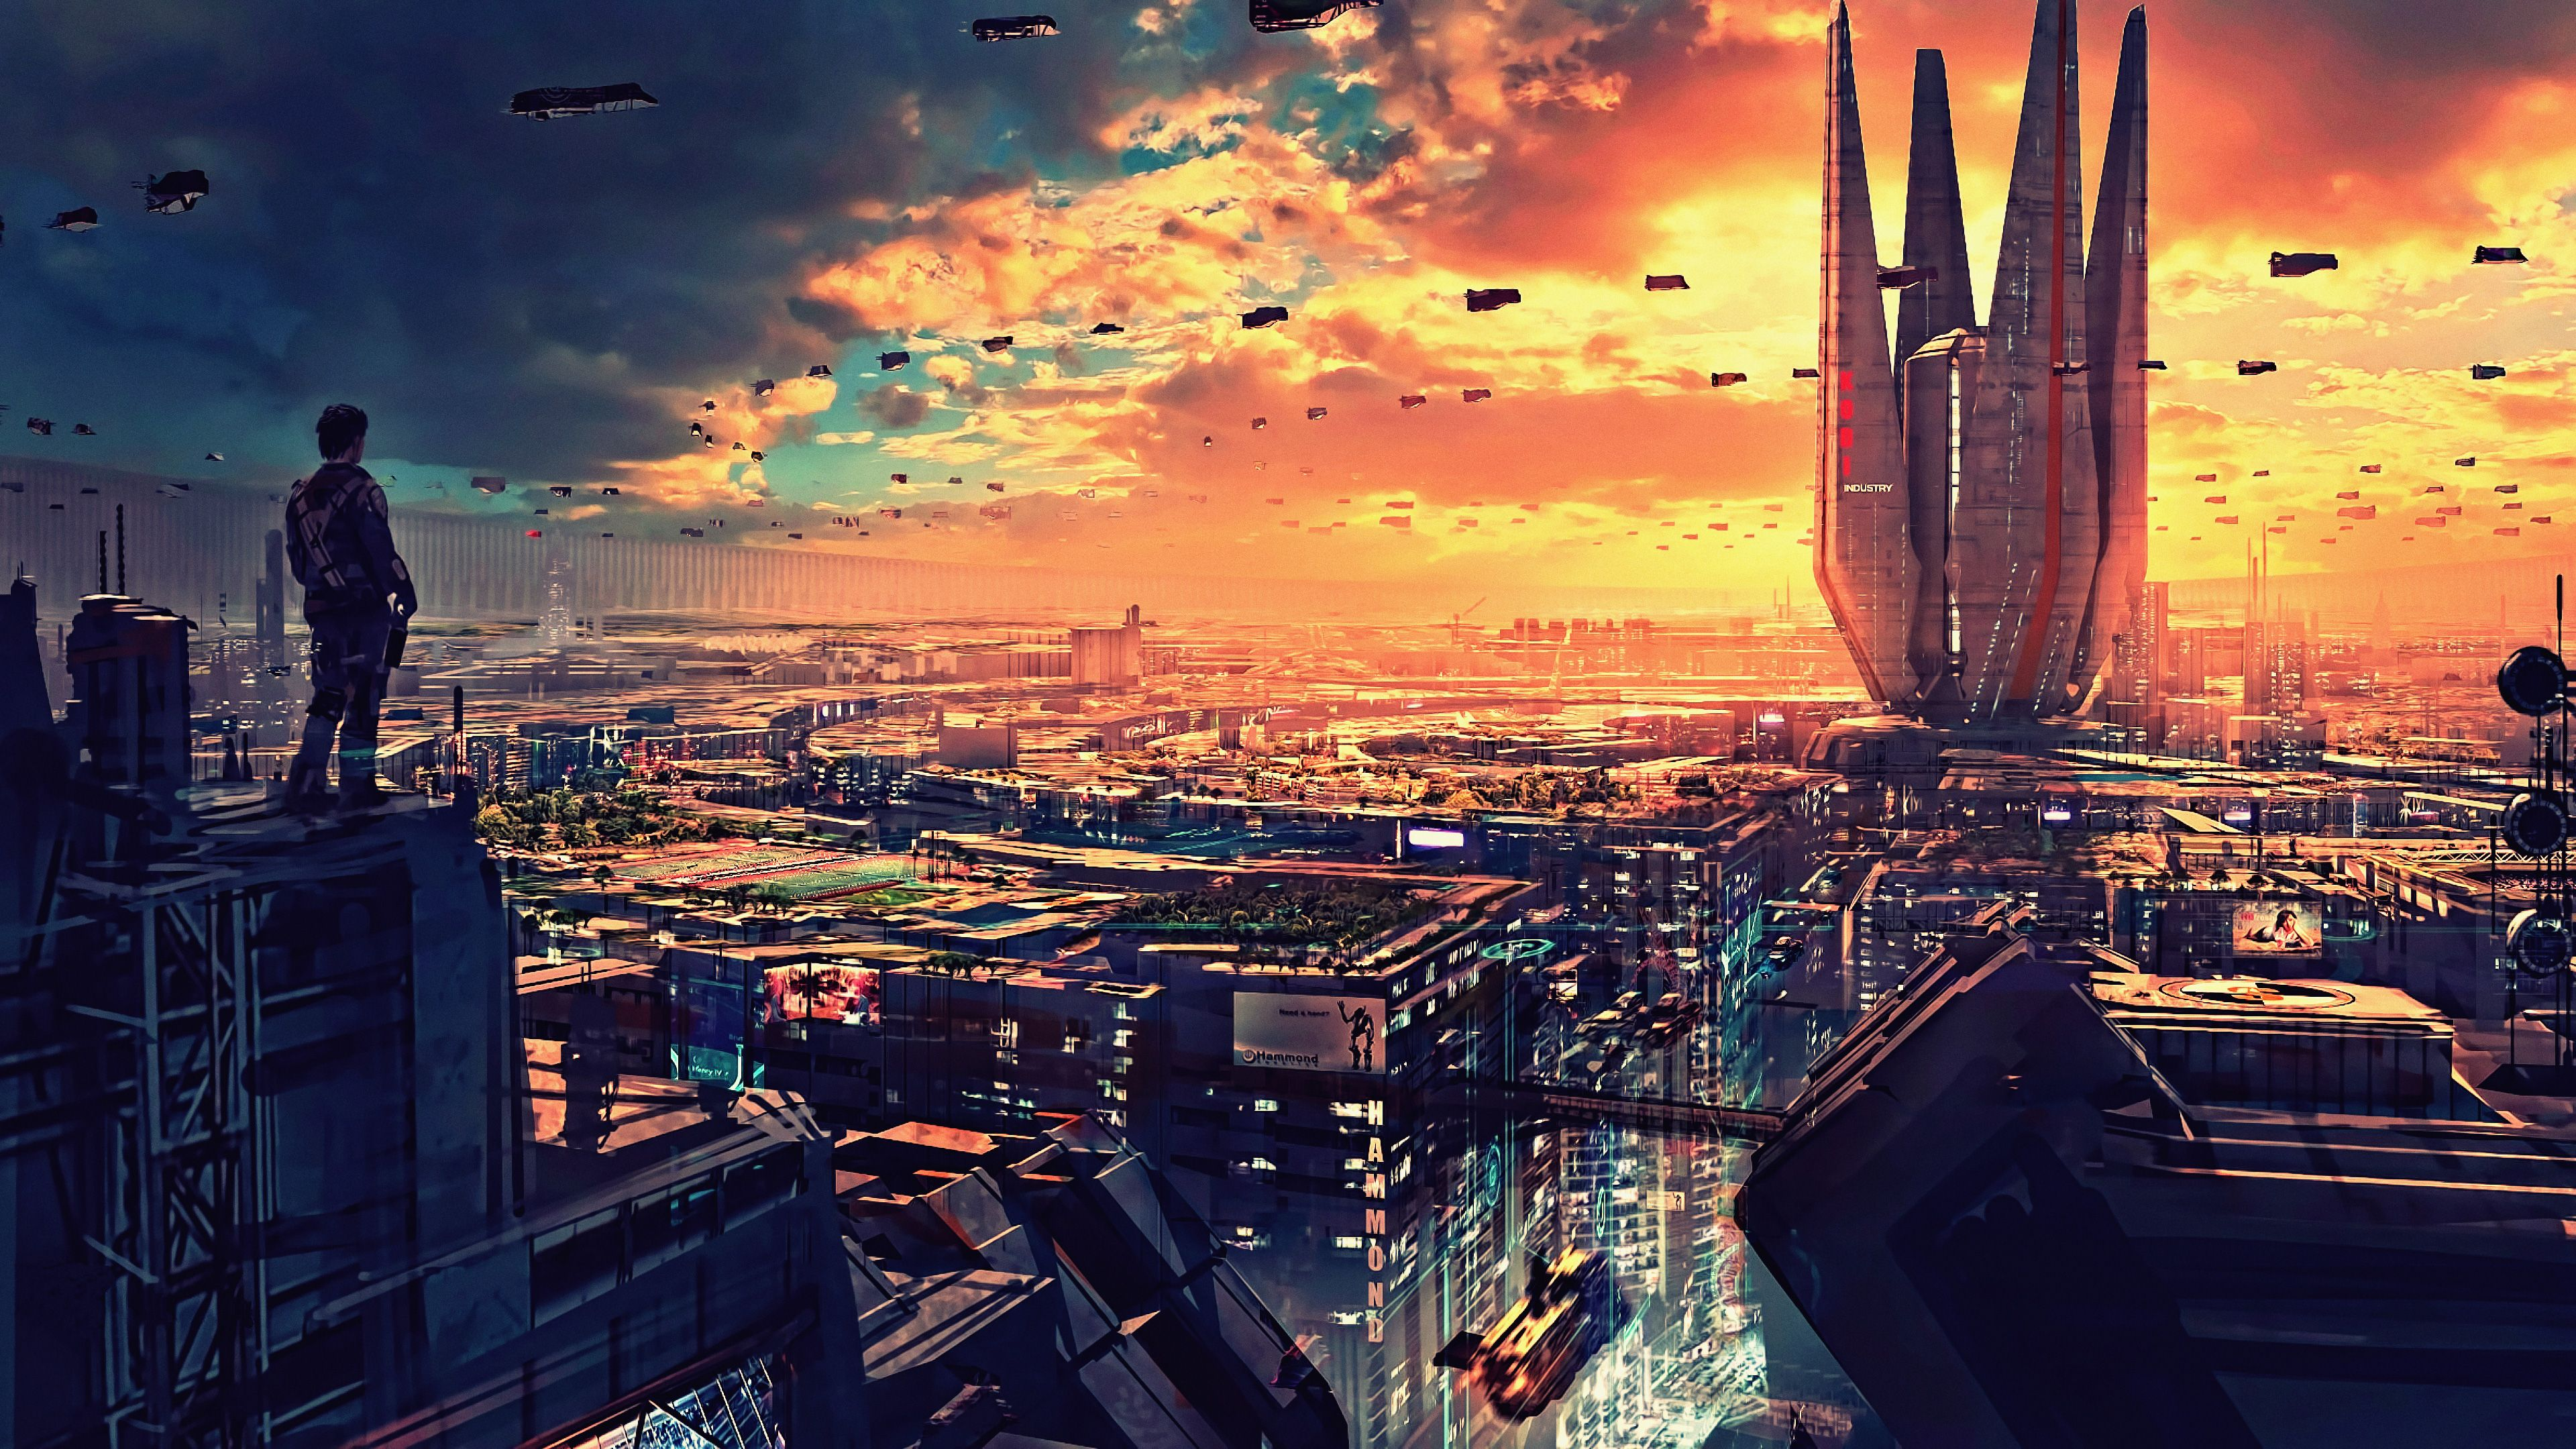 Science Fiction Cityscape Futuristic City Digital Art 4k Hd Wallpapers Digital Art Wallpapers Cityscape Wallpapers A In 2020 Futuristic City Sunset City Sci Fi City